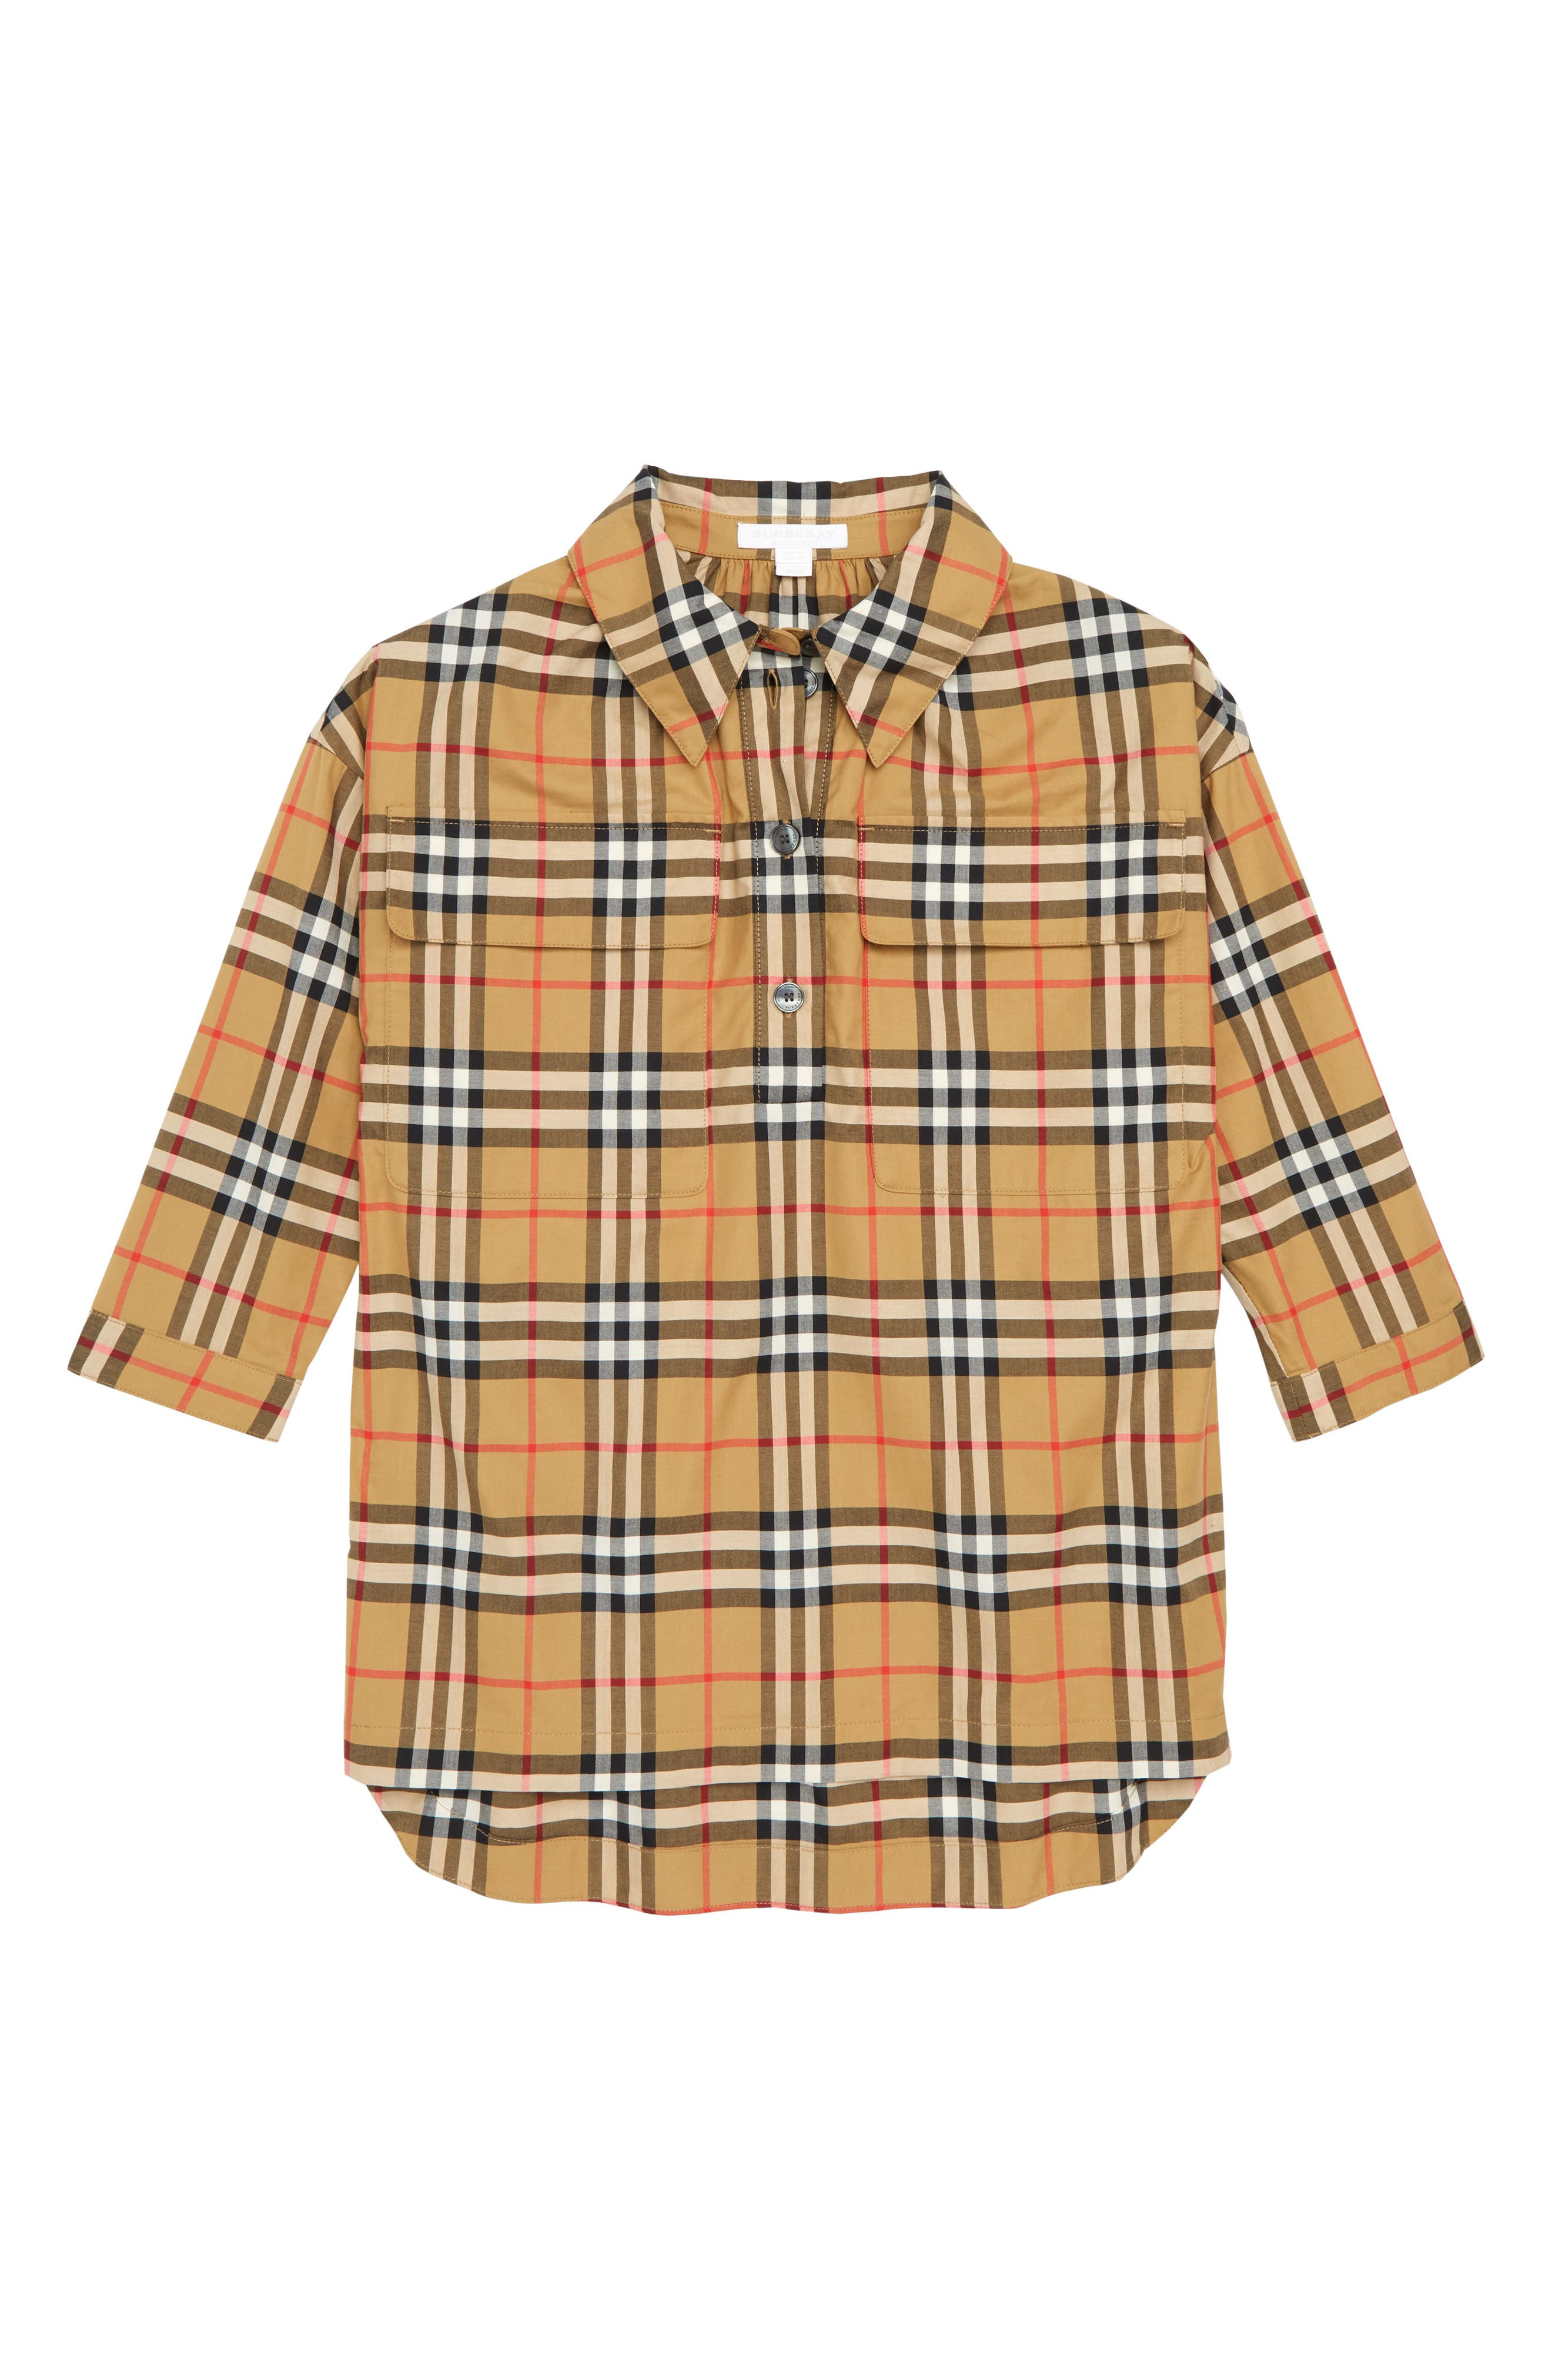 Girls Burberry Maryalice Check Smock Shirt Size 6Y  Yellow